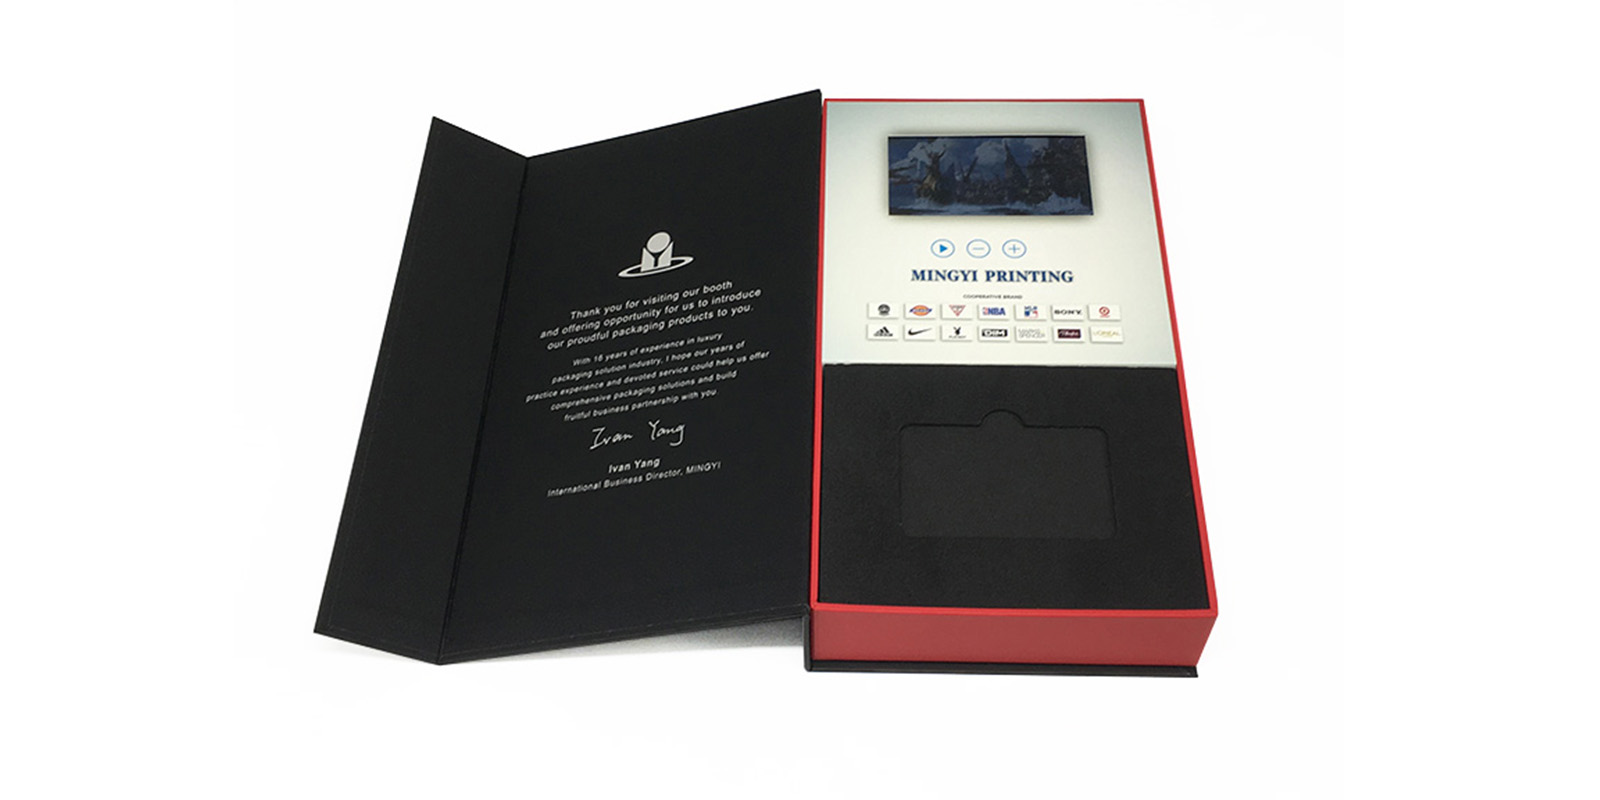 product-Mingyi Printing-Custom high quality lcd screen gift box for VIP client to promote corporate